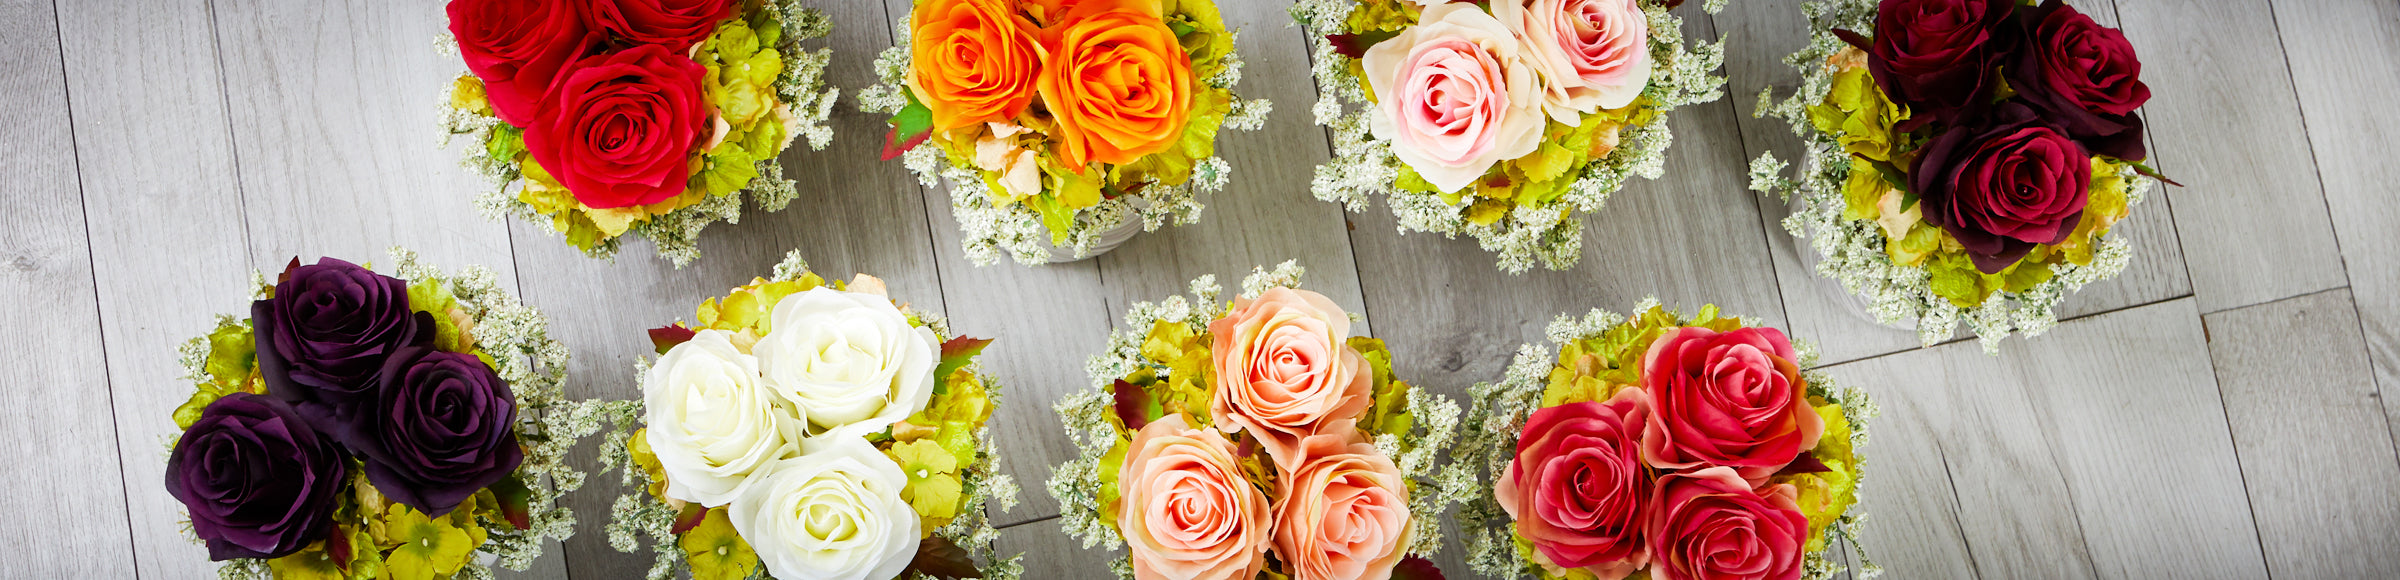 Dropshipping Wholesalers for Artificial Flowers and Plants